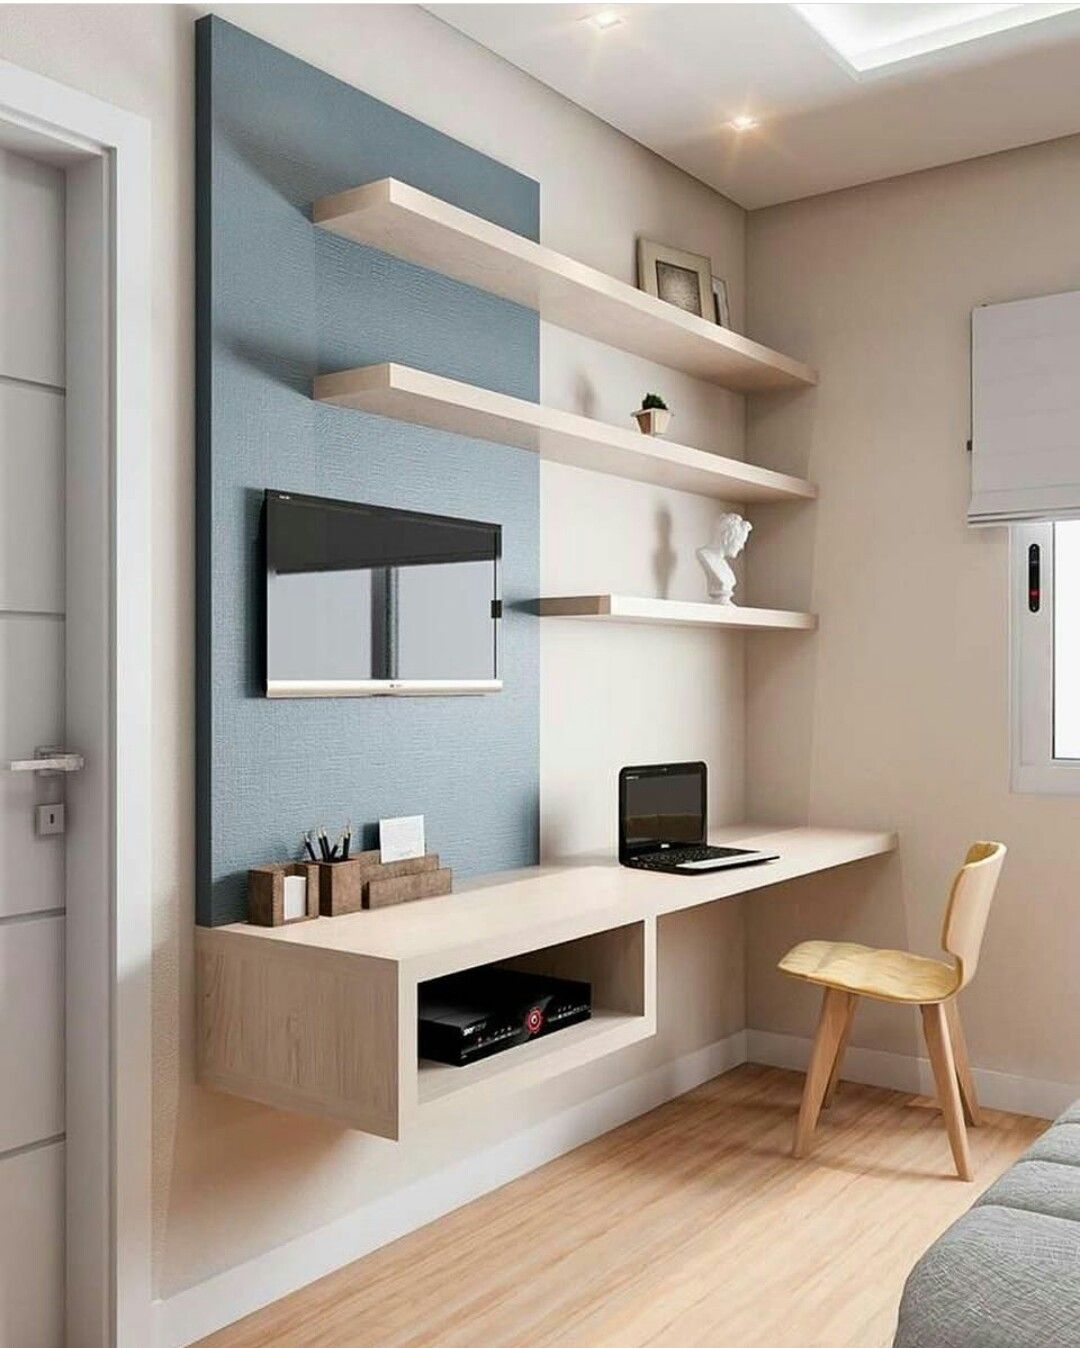 Office Bedroom Simple And Organized Wall Shelves And Wall Desk